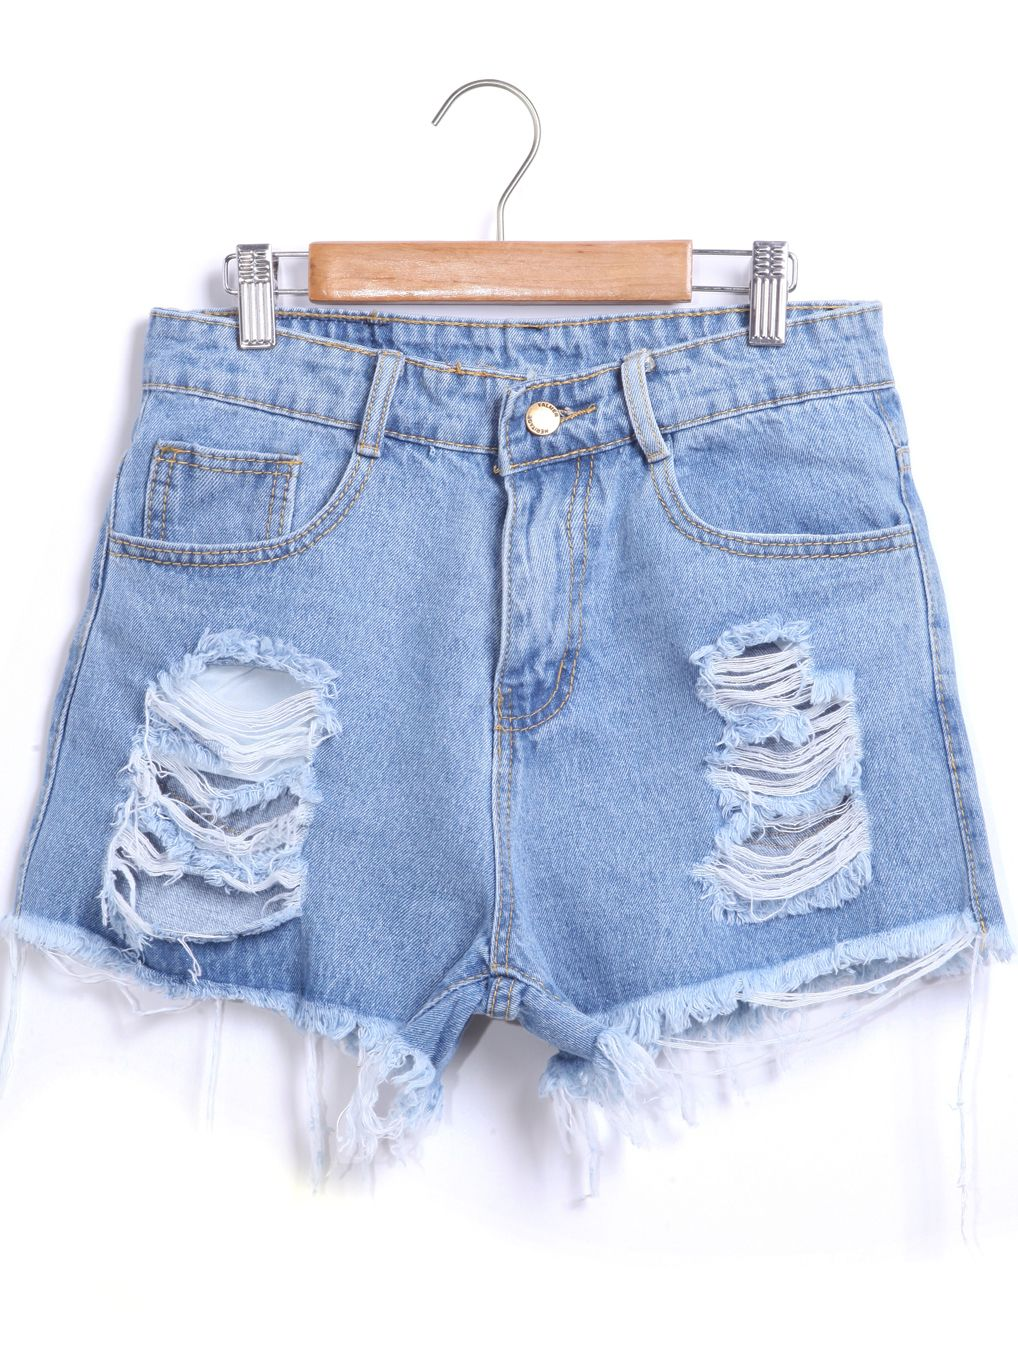 Blue Ripped Fringe Denim Shorts | Shorts and Clothes